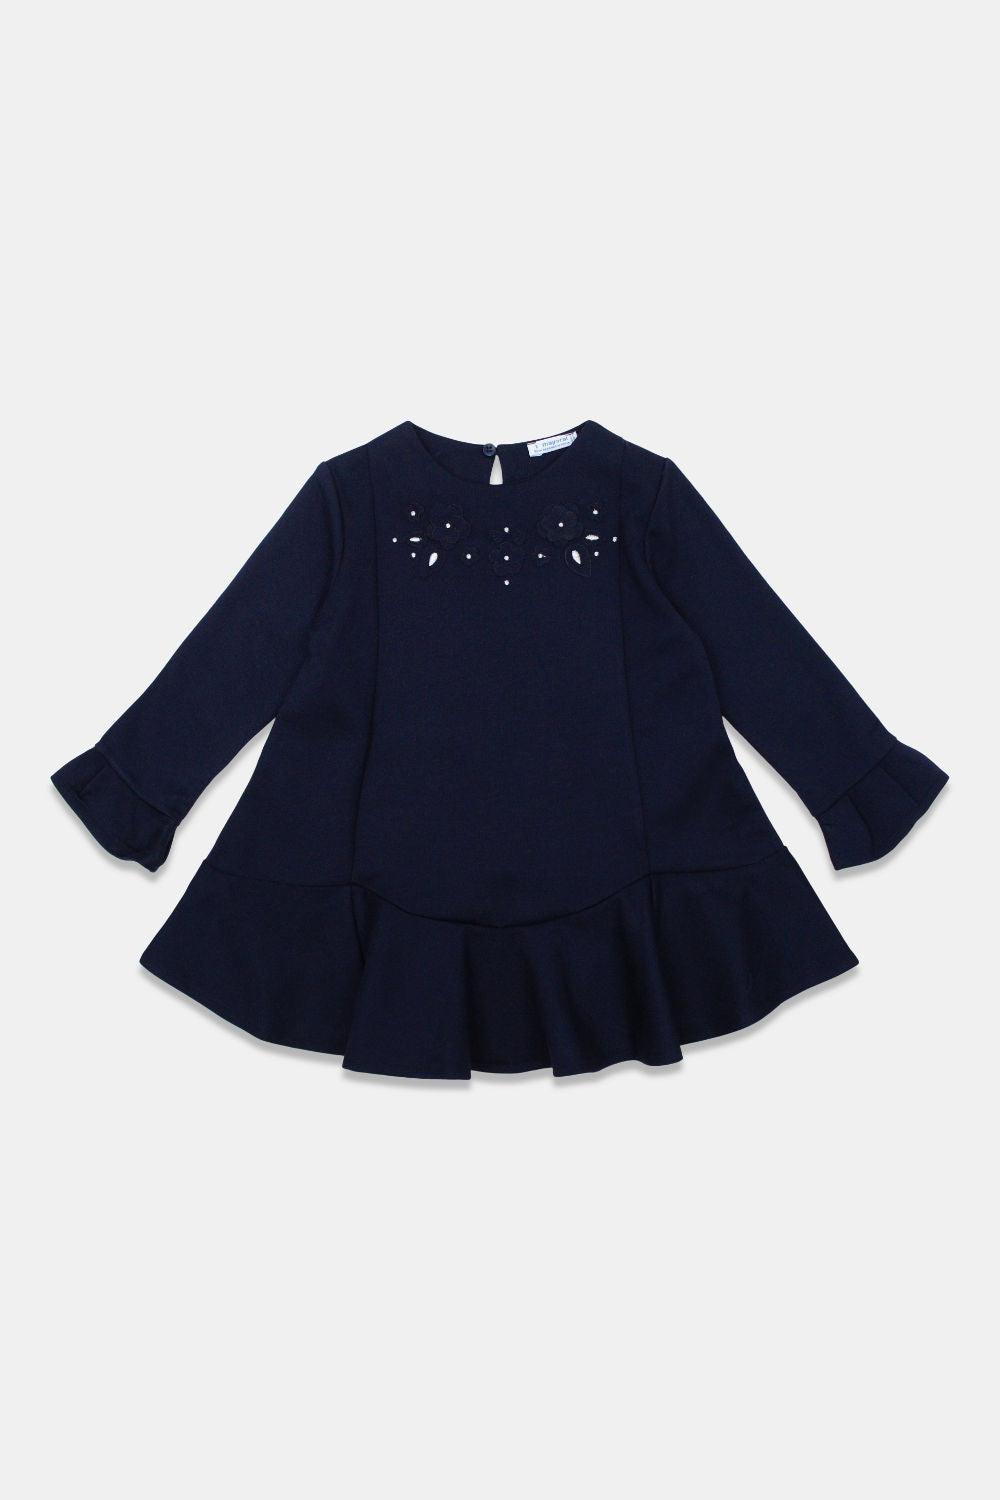 Mayoral Navy Applique Dress